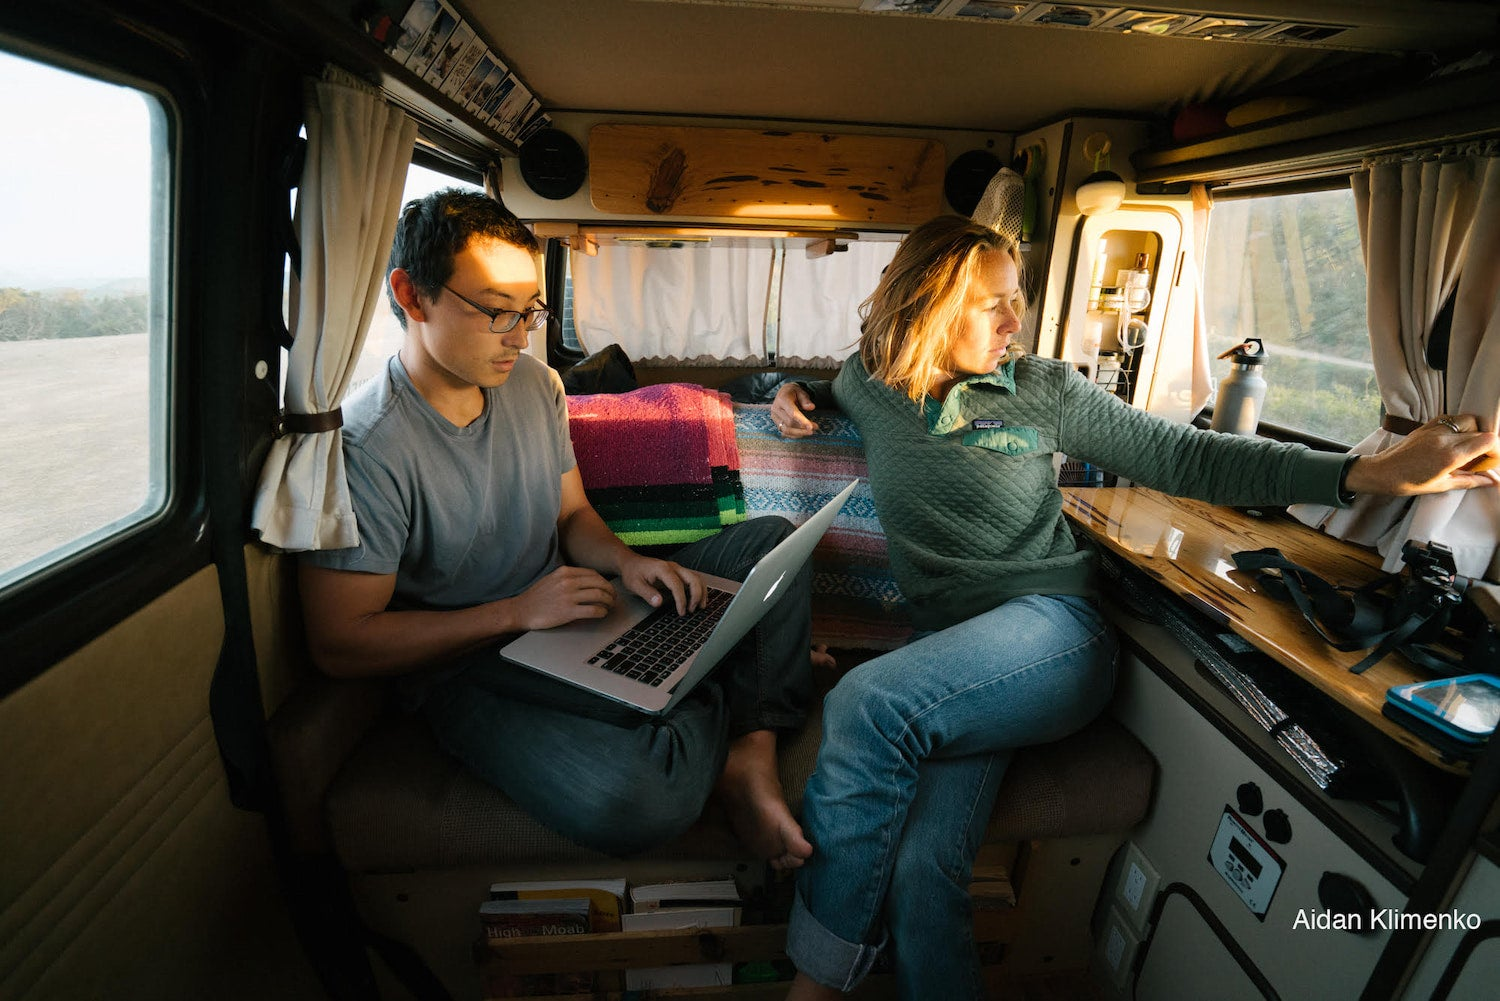 Mak and Owen of Bound for nowhere working in one of their rigs.